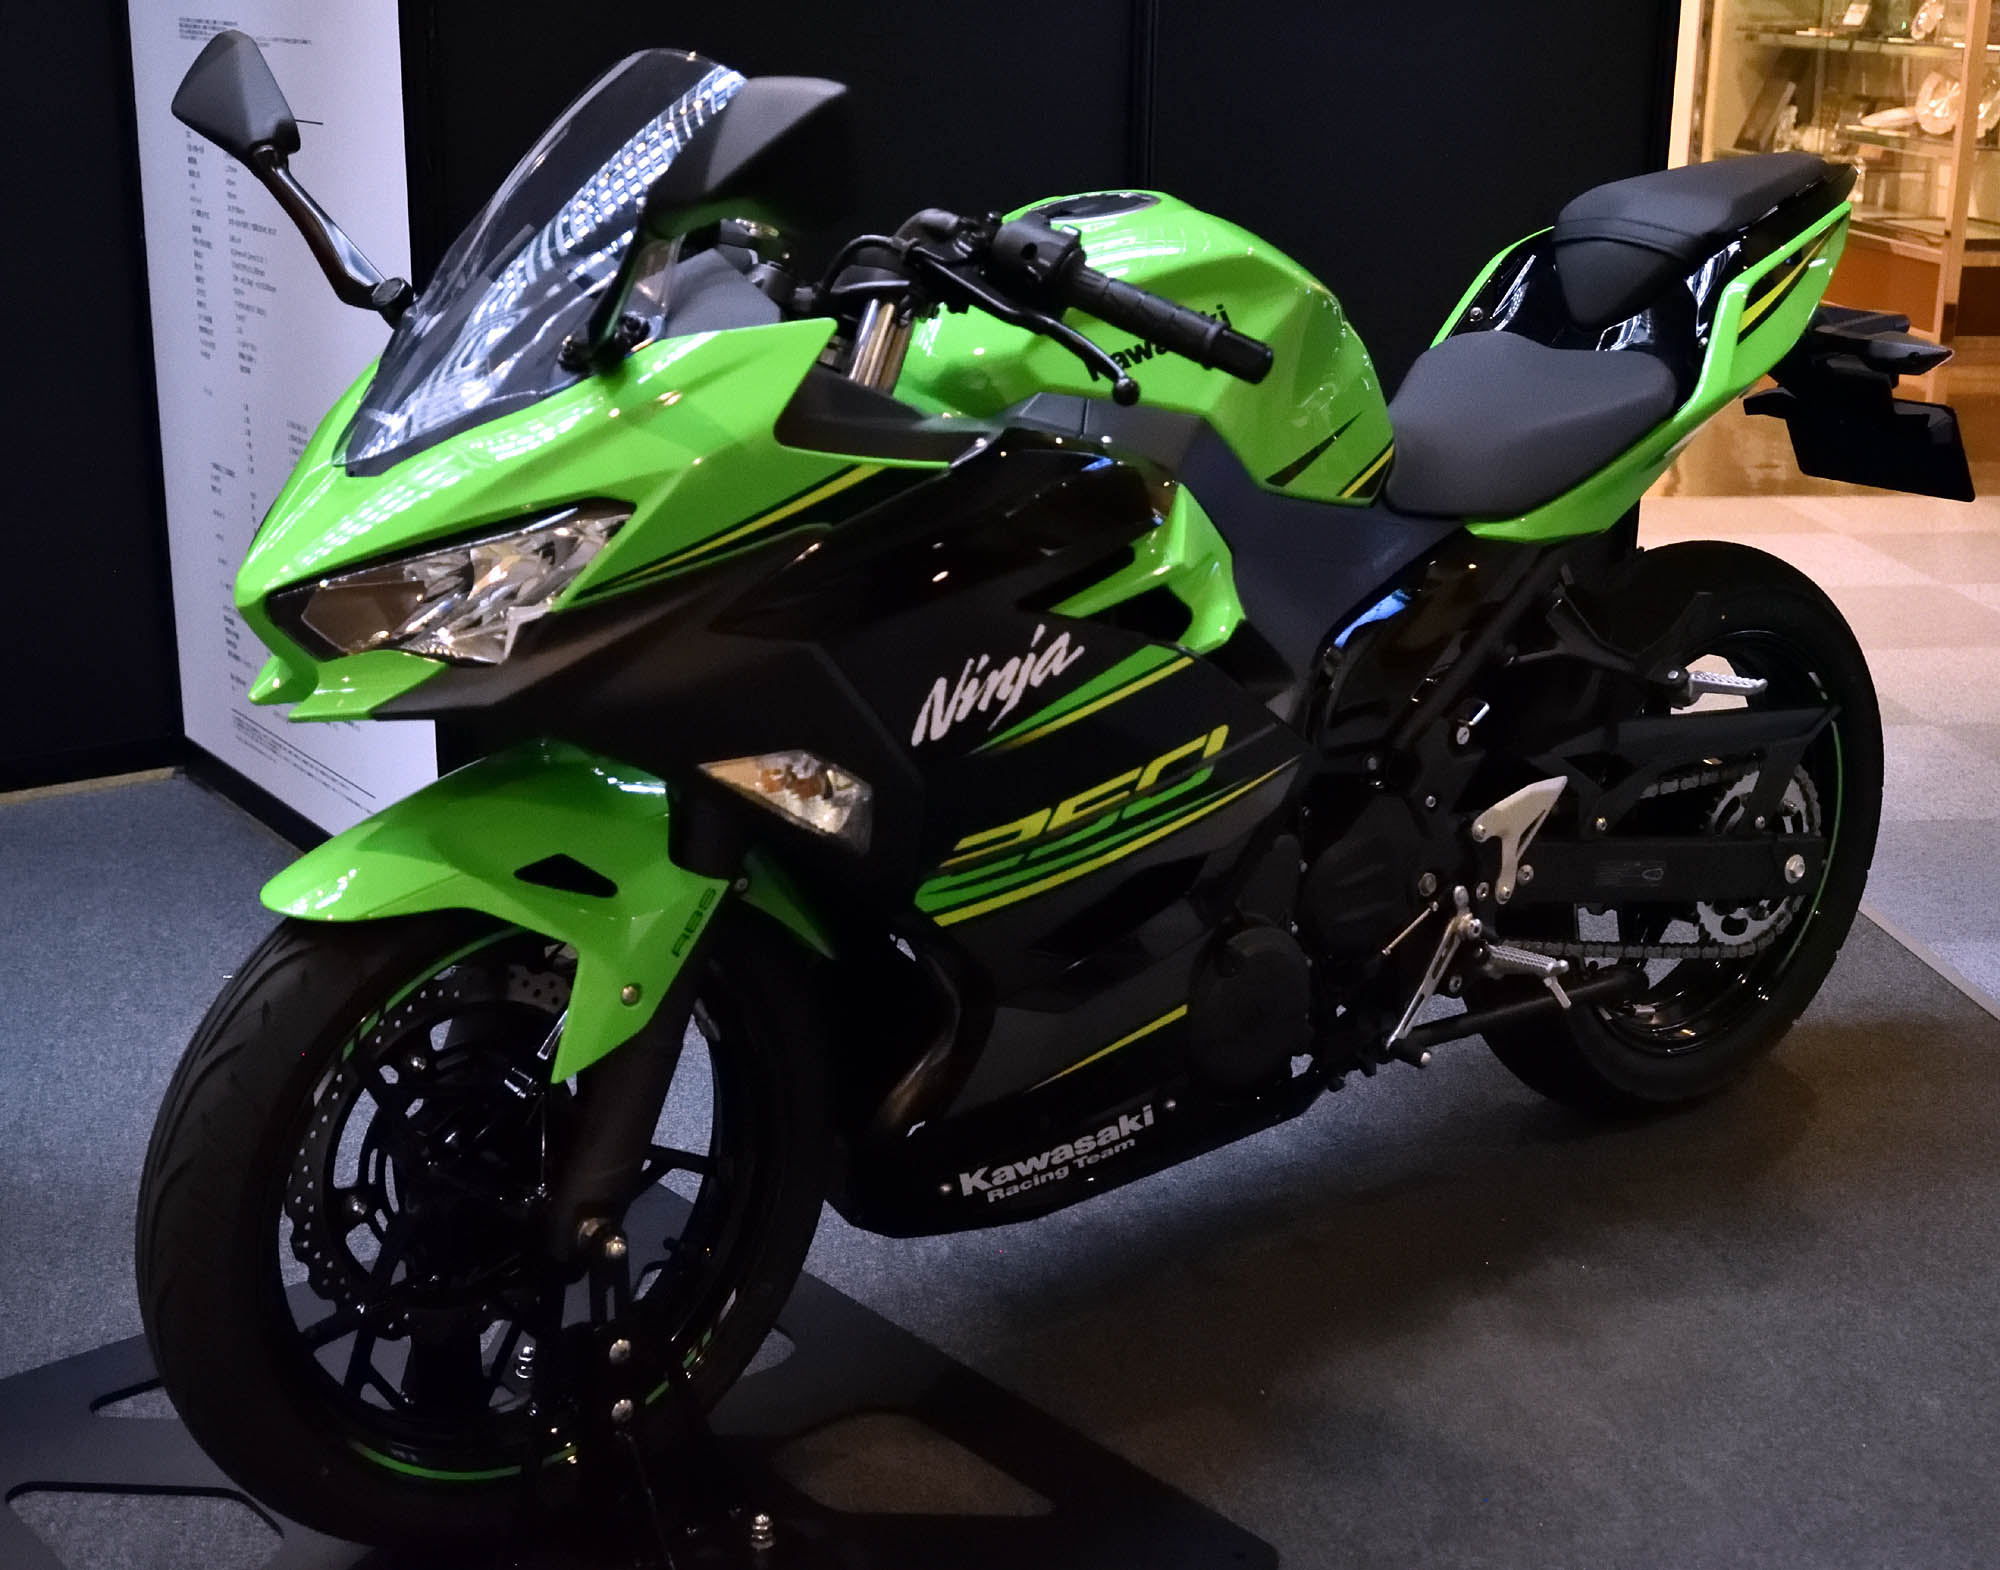 Filekawasaki Ninja 250 2018jpg Wikimedia Commons